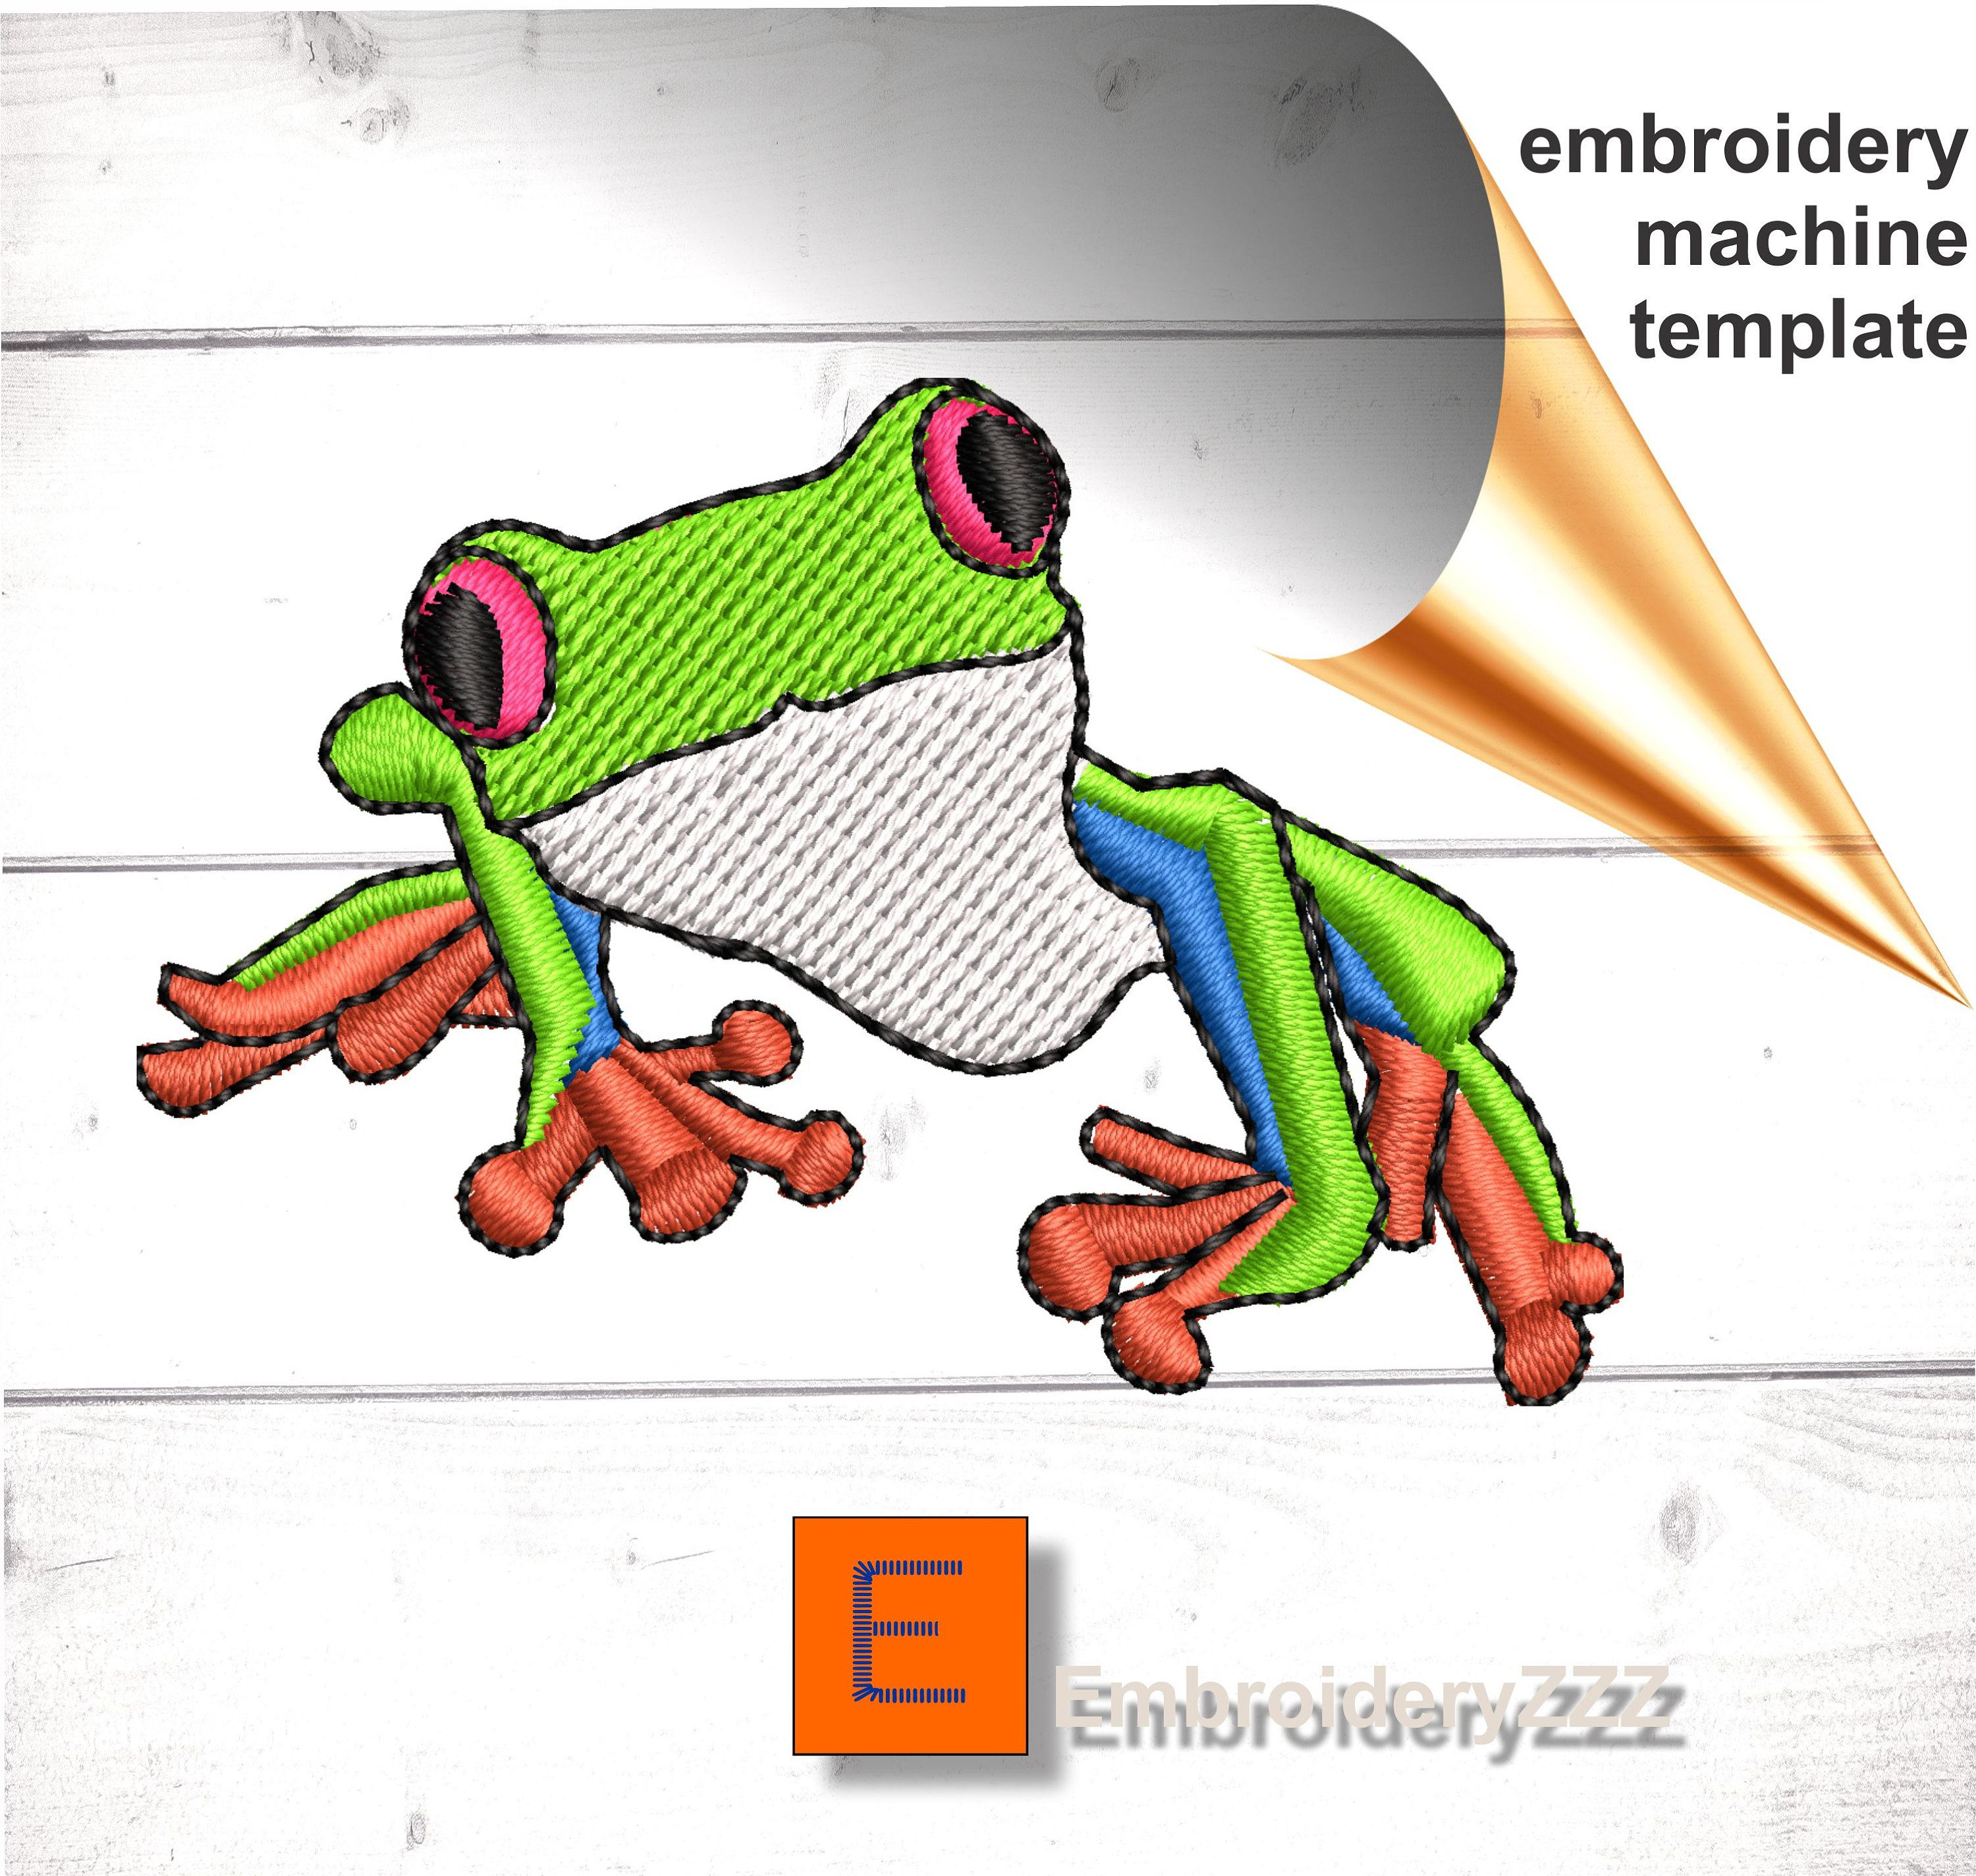 Tree Frog Embroidery Design Pattern Red Eyed Rain Forest